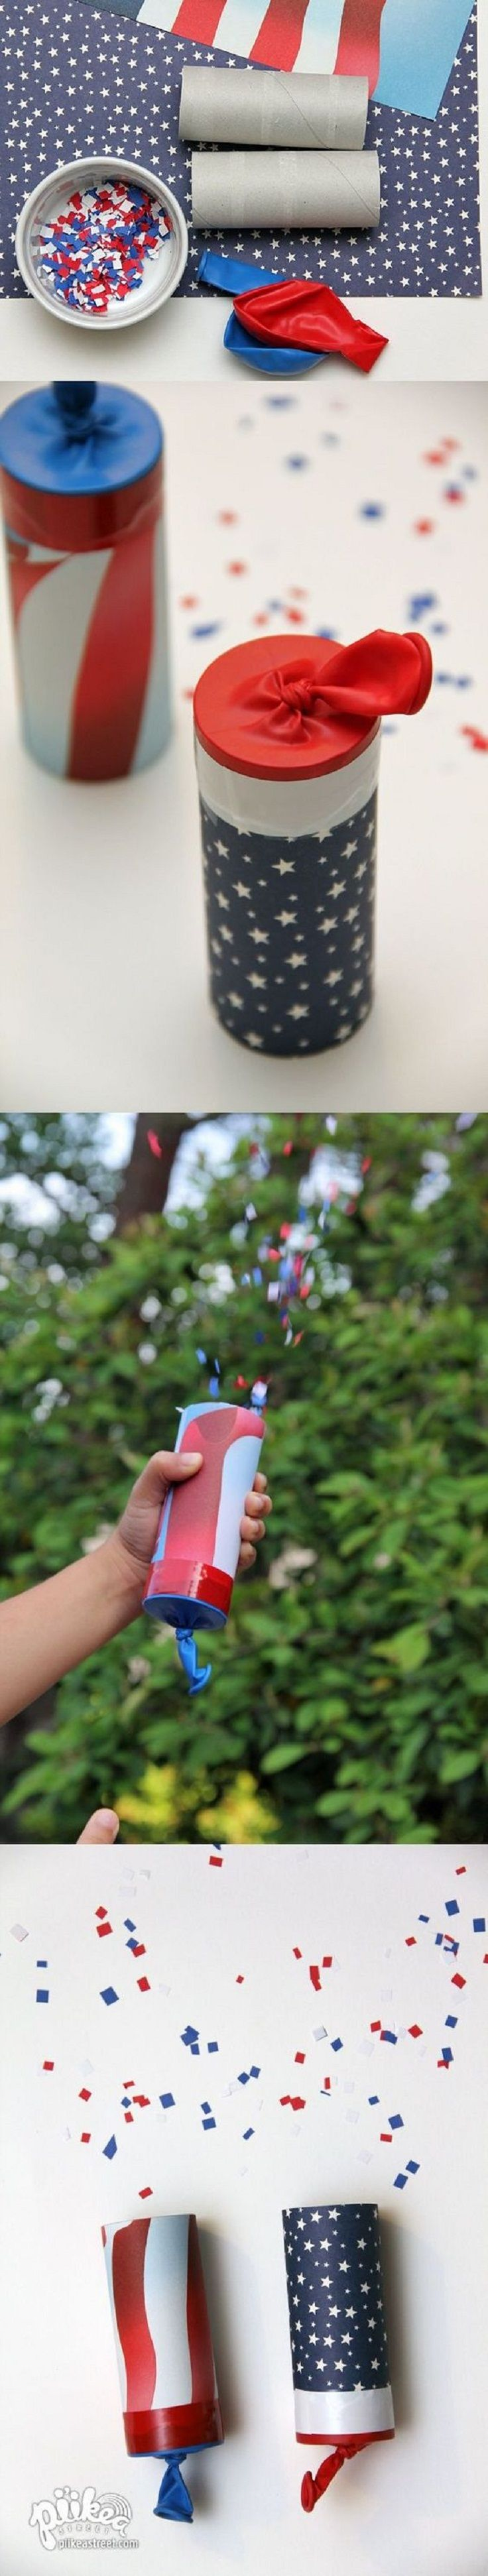 Fourth of July Confetti Launchers - In most countries, fireworks are banned for personal use, but even if they're not in your country, we have a safer , more kid-friendly option for you. Confetti launchers are fun to make and use, and you don't have to worry because they can't hurt anyone. So go get some paper rolls, fill them up with confetti and have fun!